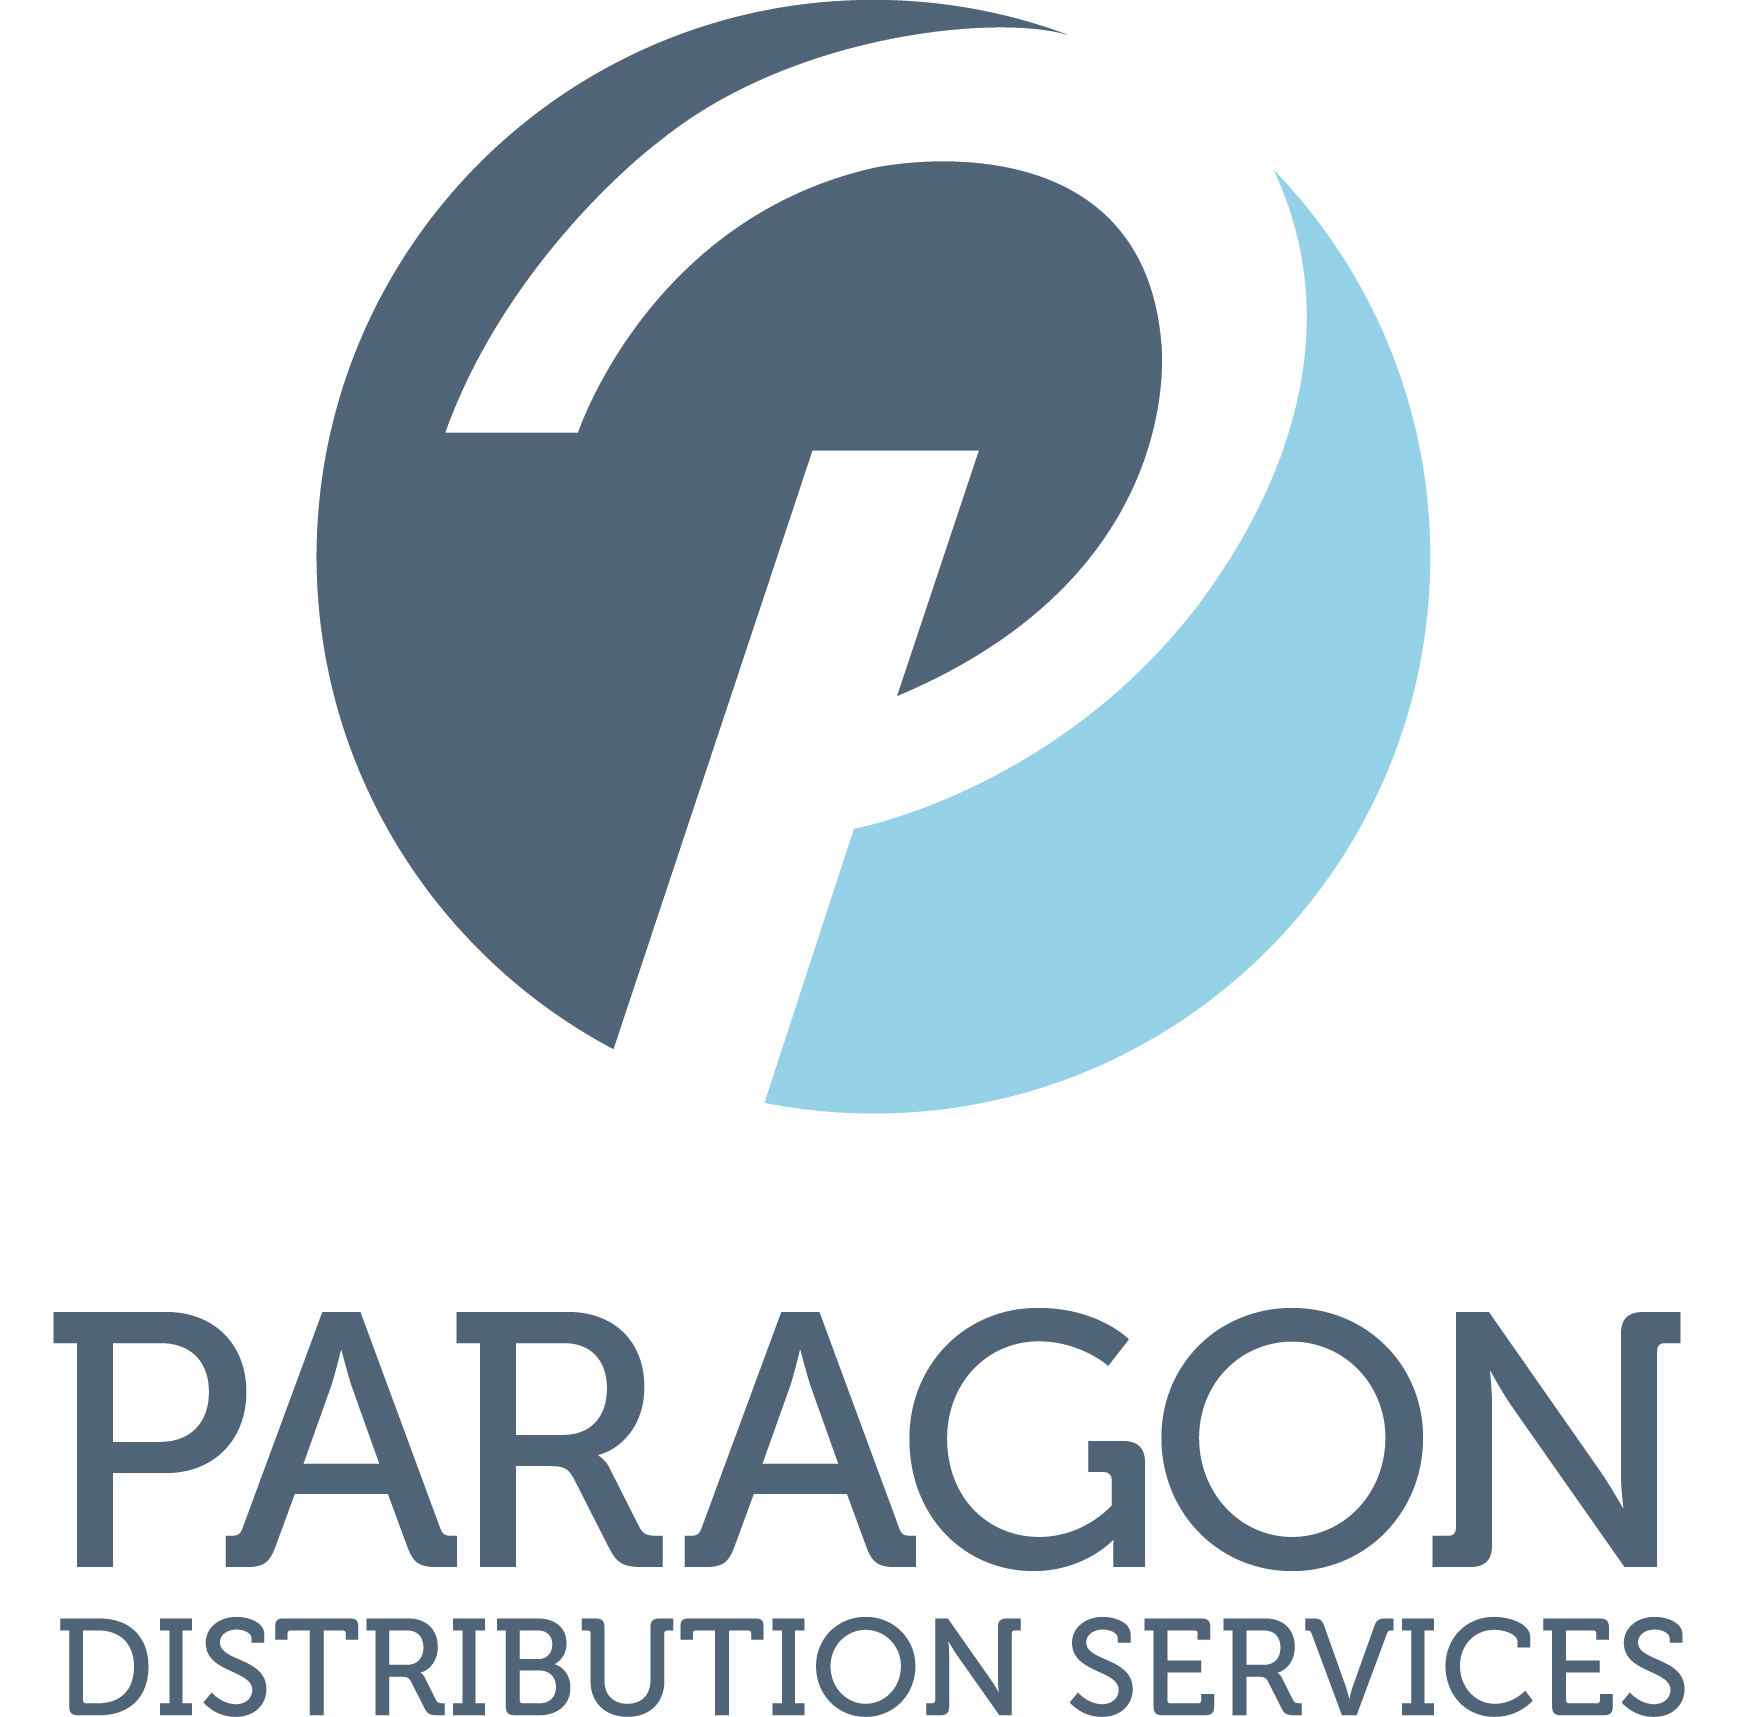 Paragon Distribution Services